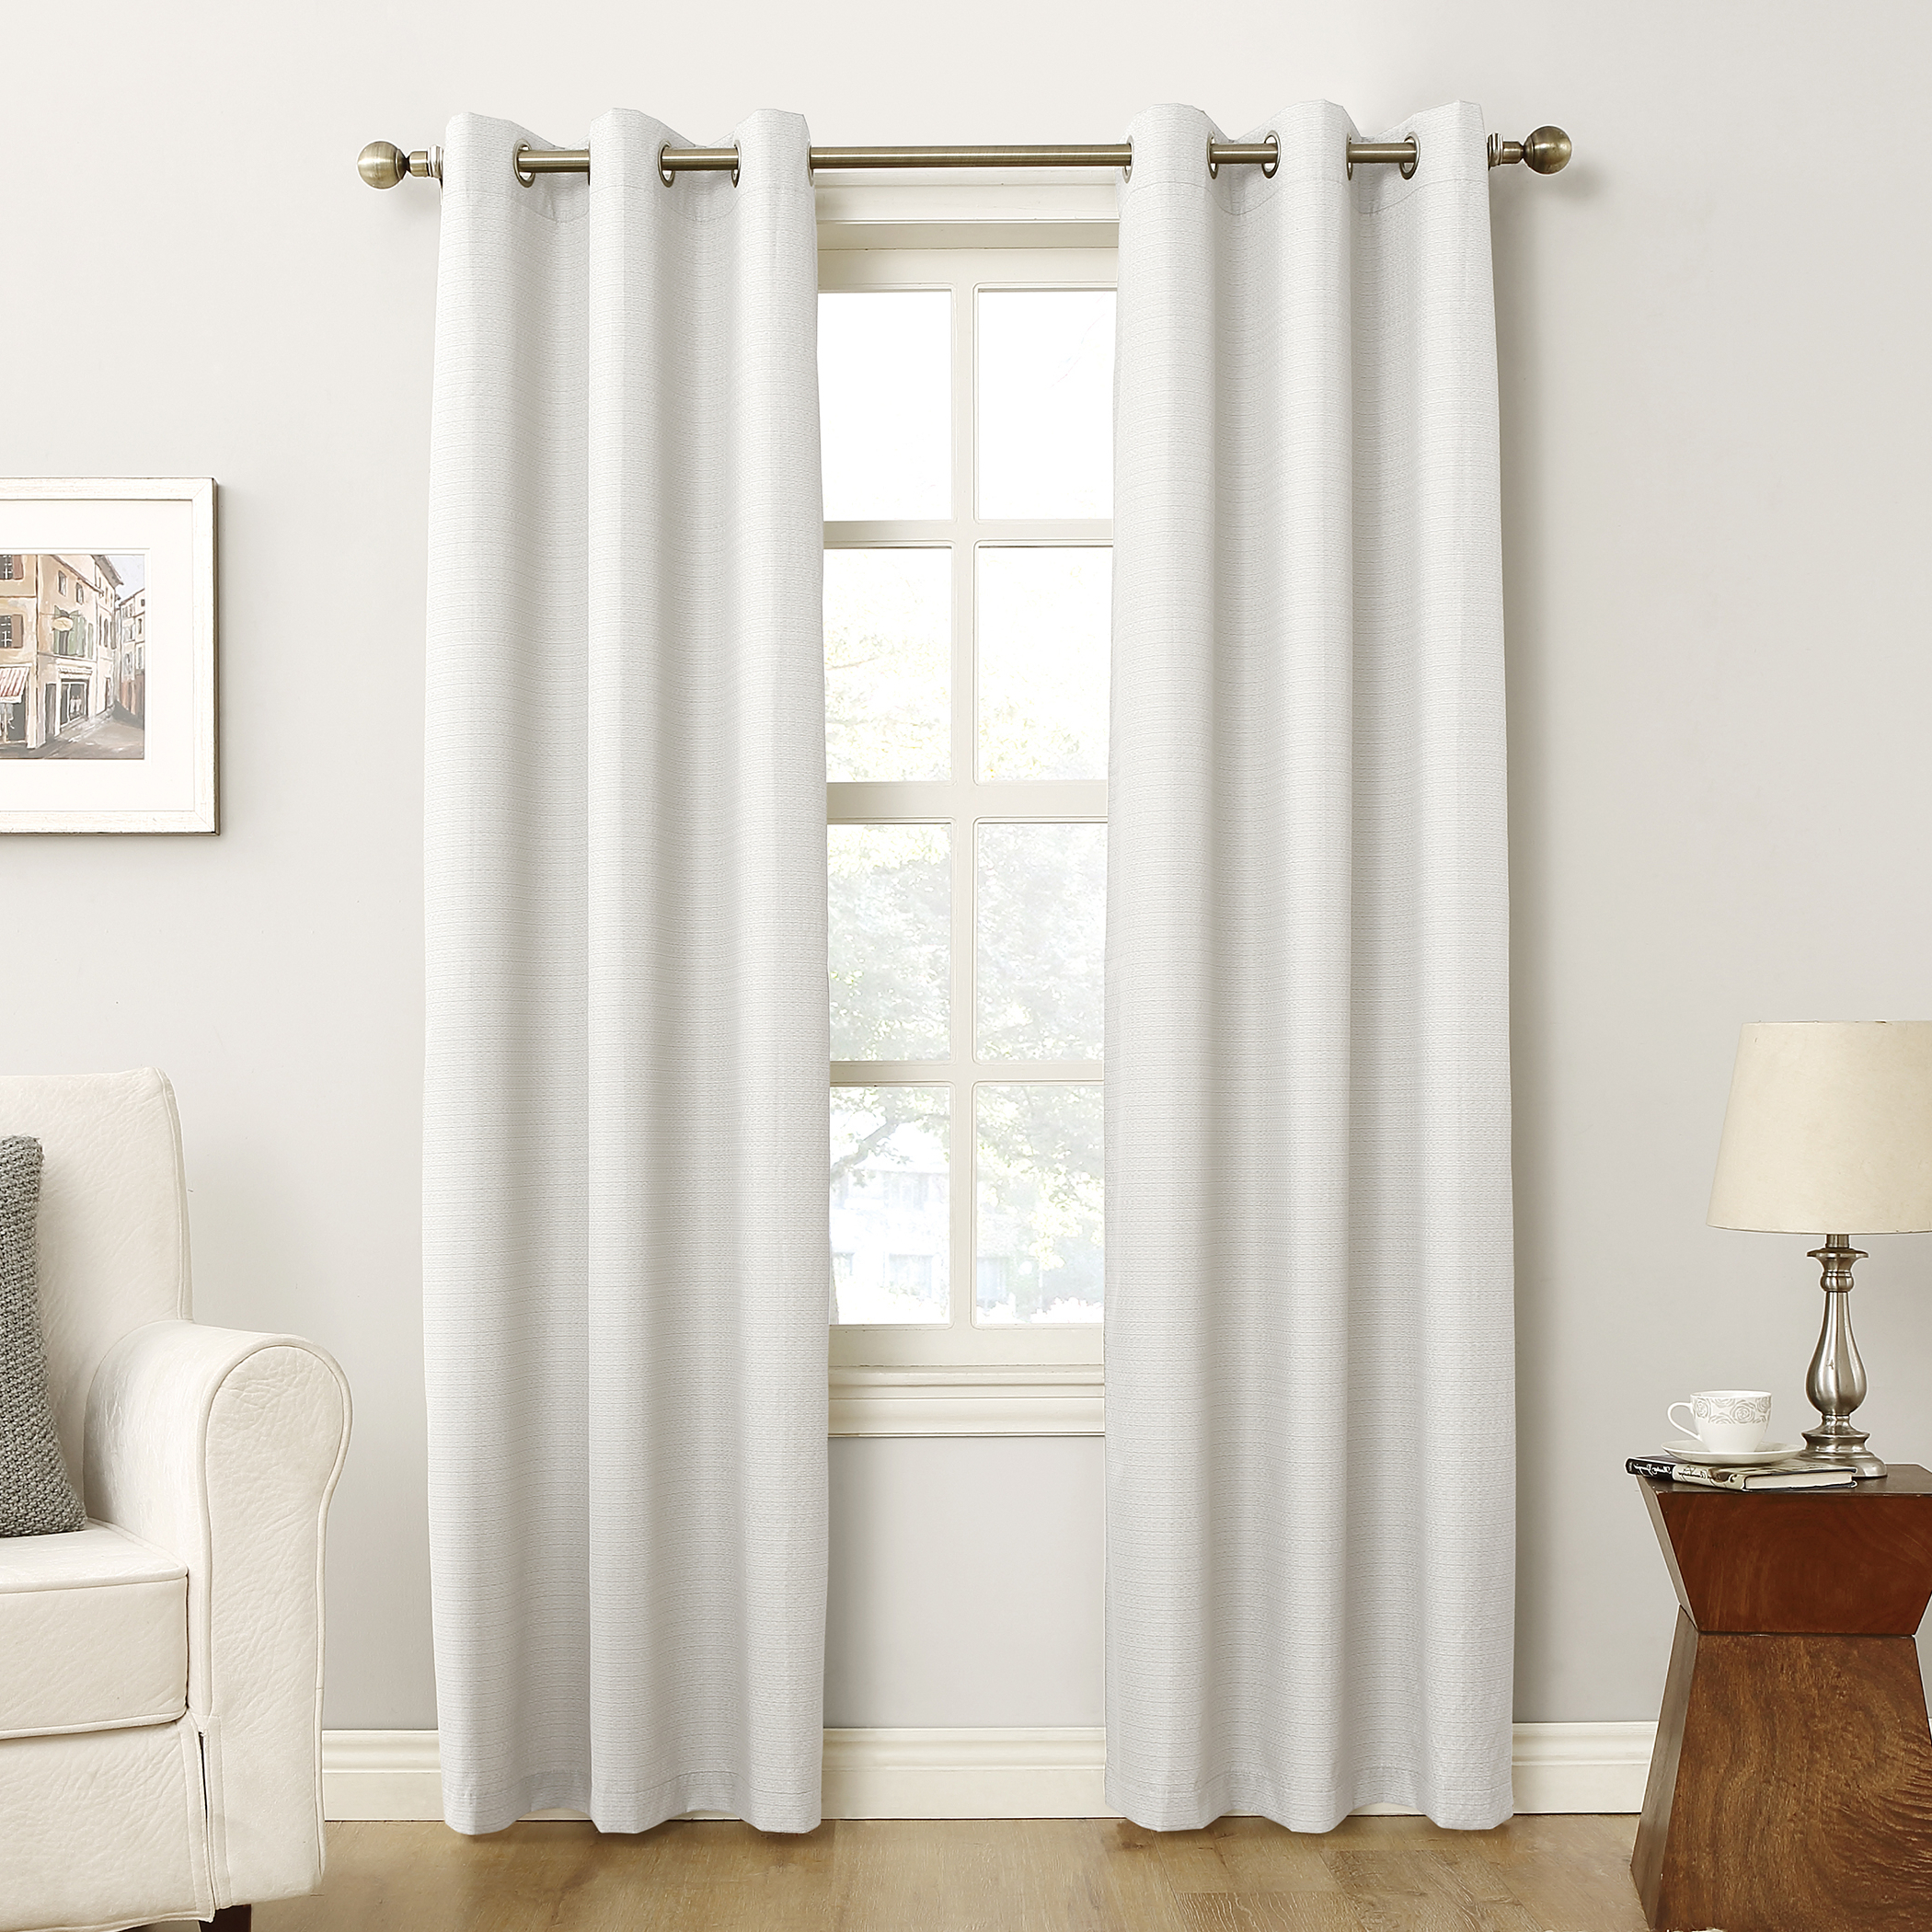 Cooper Textured Thermal Insulated Grommet Curtain Panels For Most Popular Sun Zero Cooper Textured Thermal Lined Room Darkening Energy Efficient Grommet Curtain Panel (View 5 of 20)